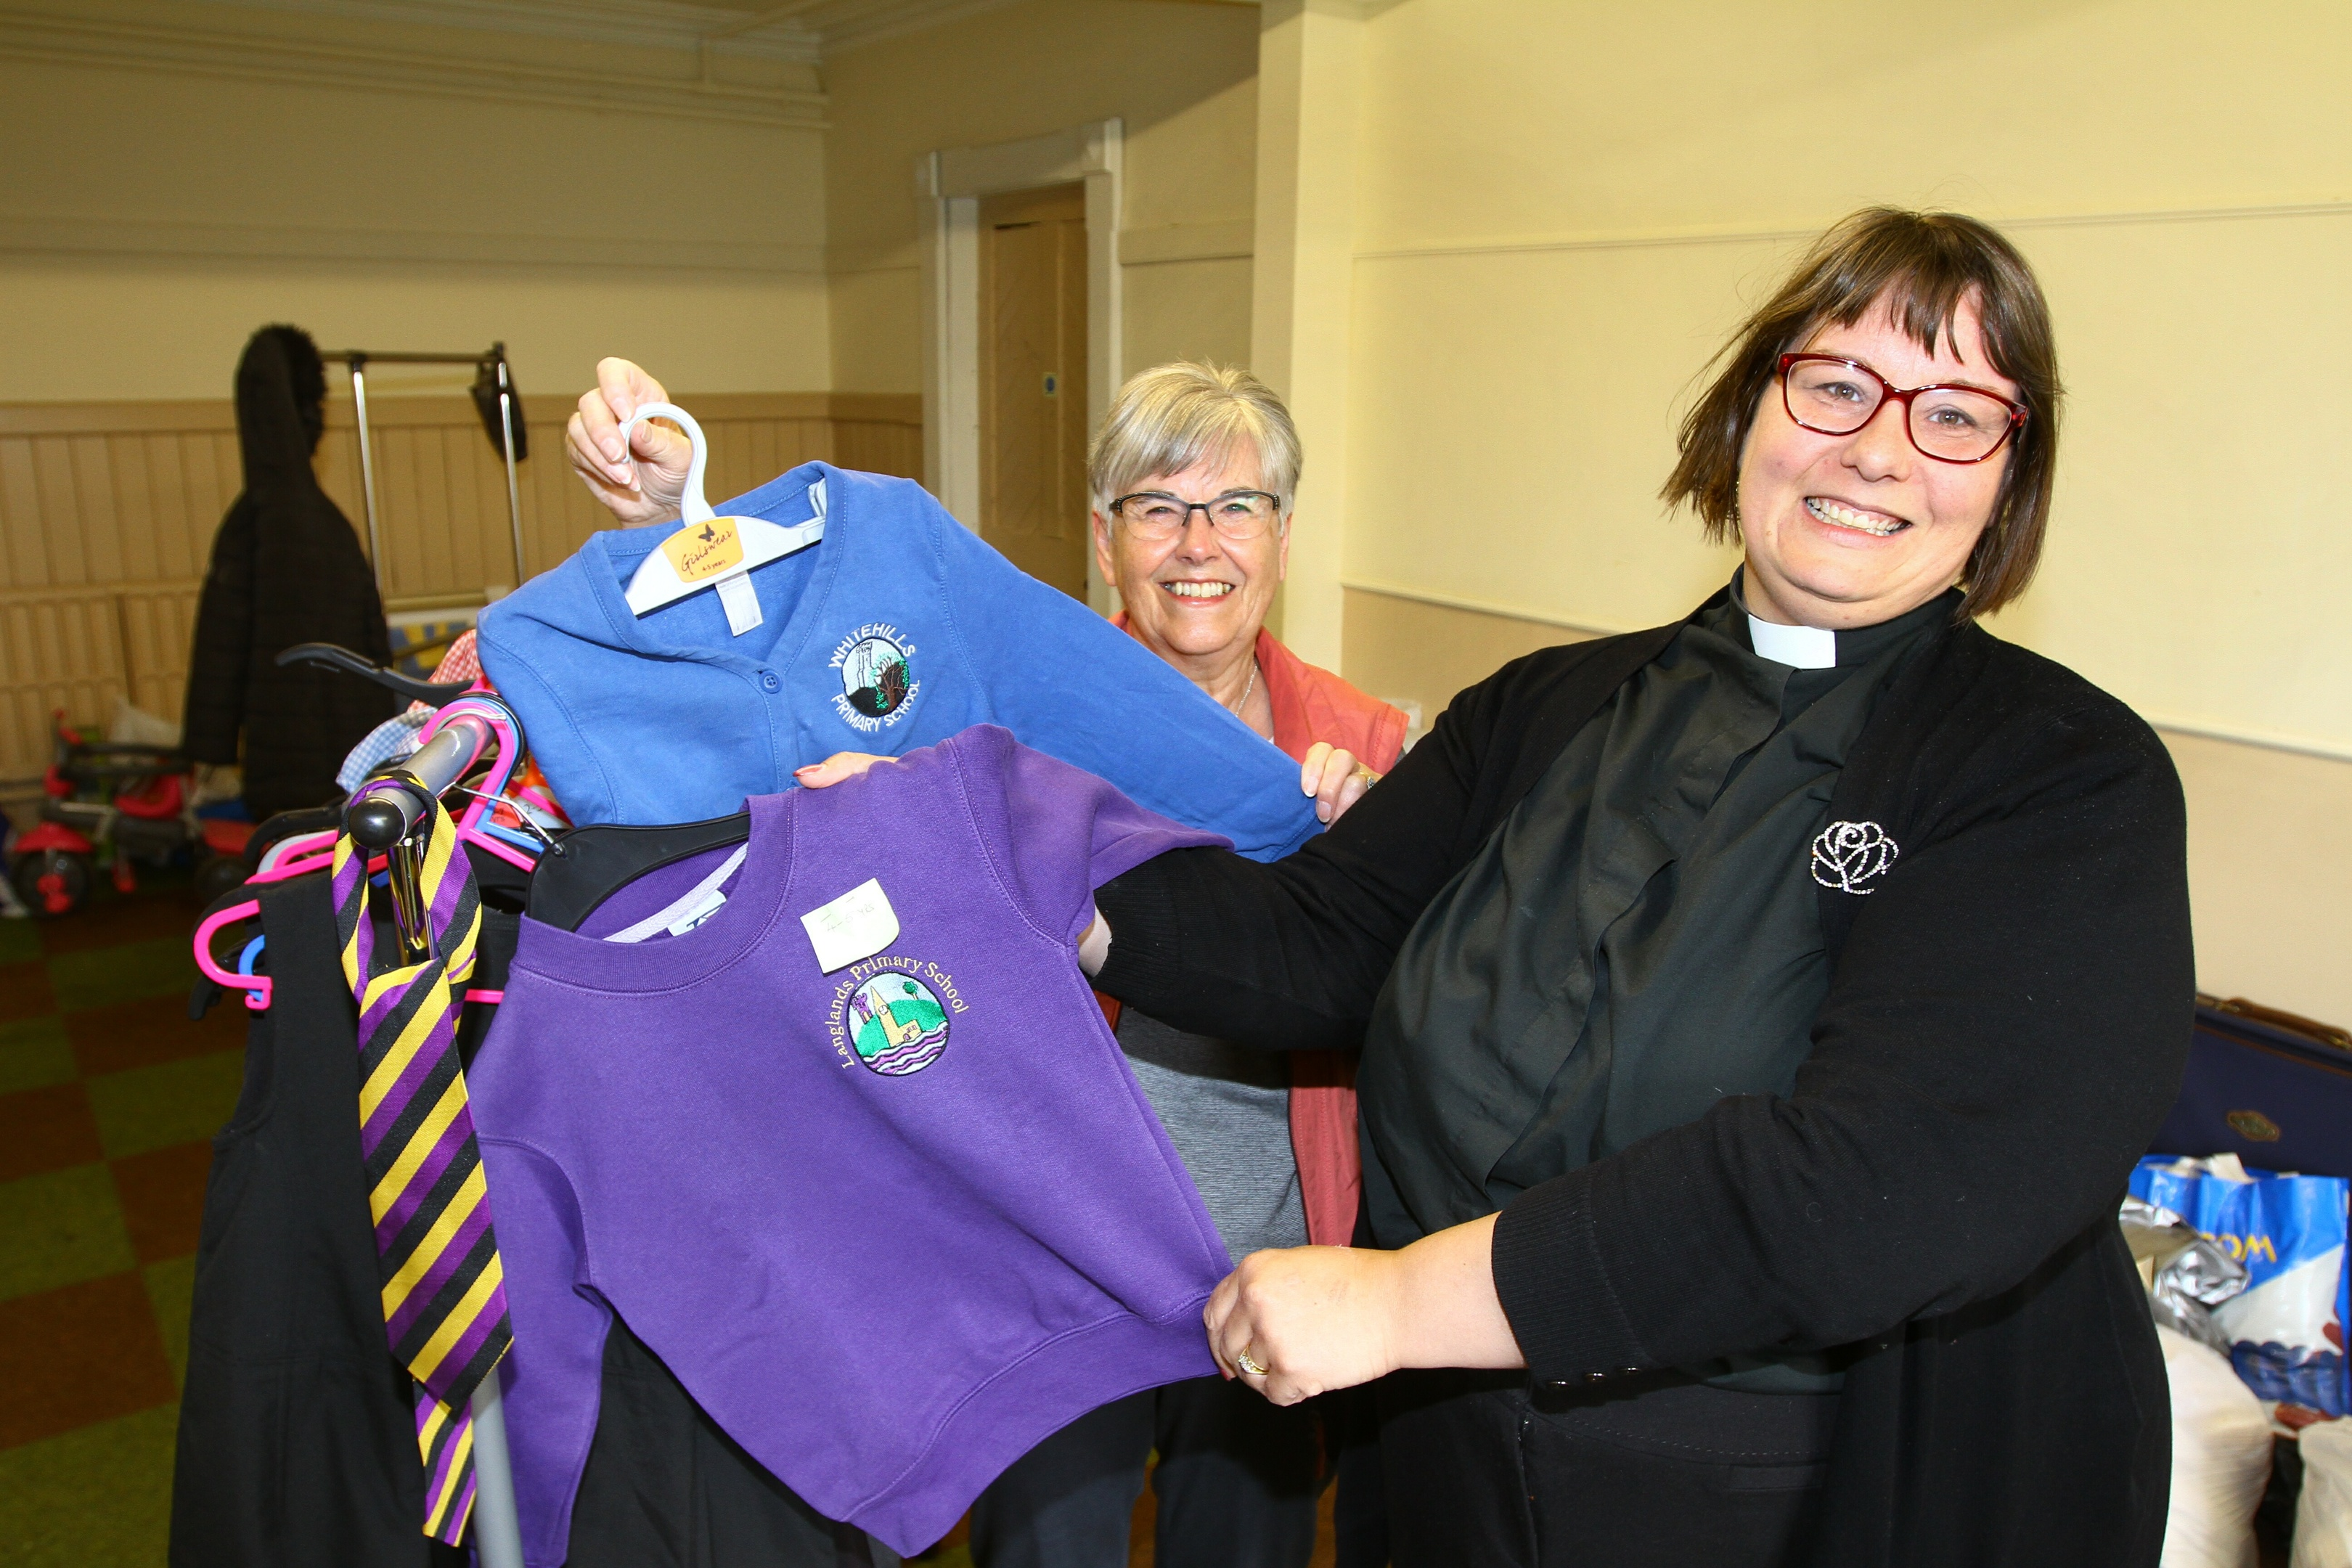 Rev Maggie Hunt & volunteer Helen McLeod are pictured with some of the clothes